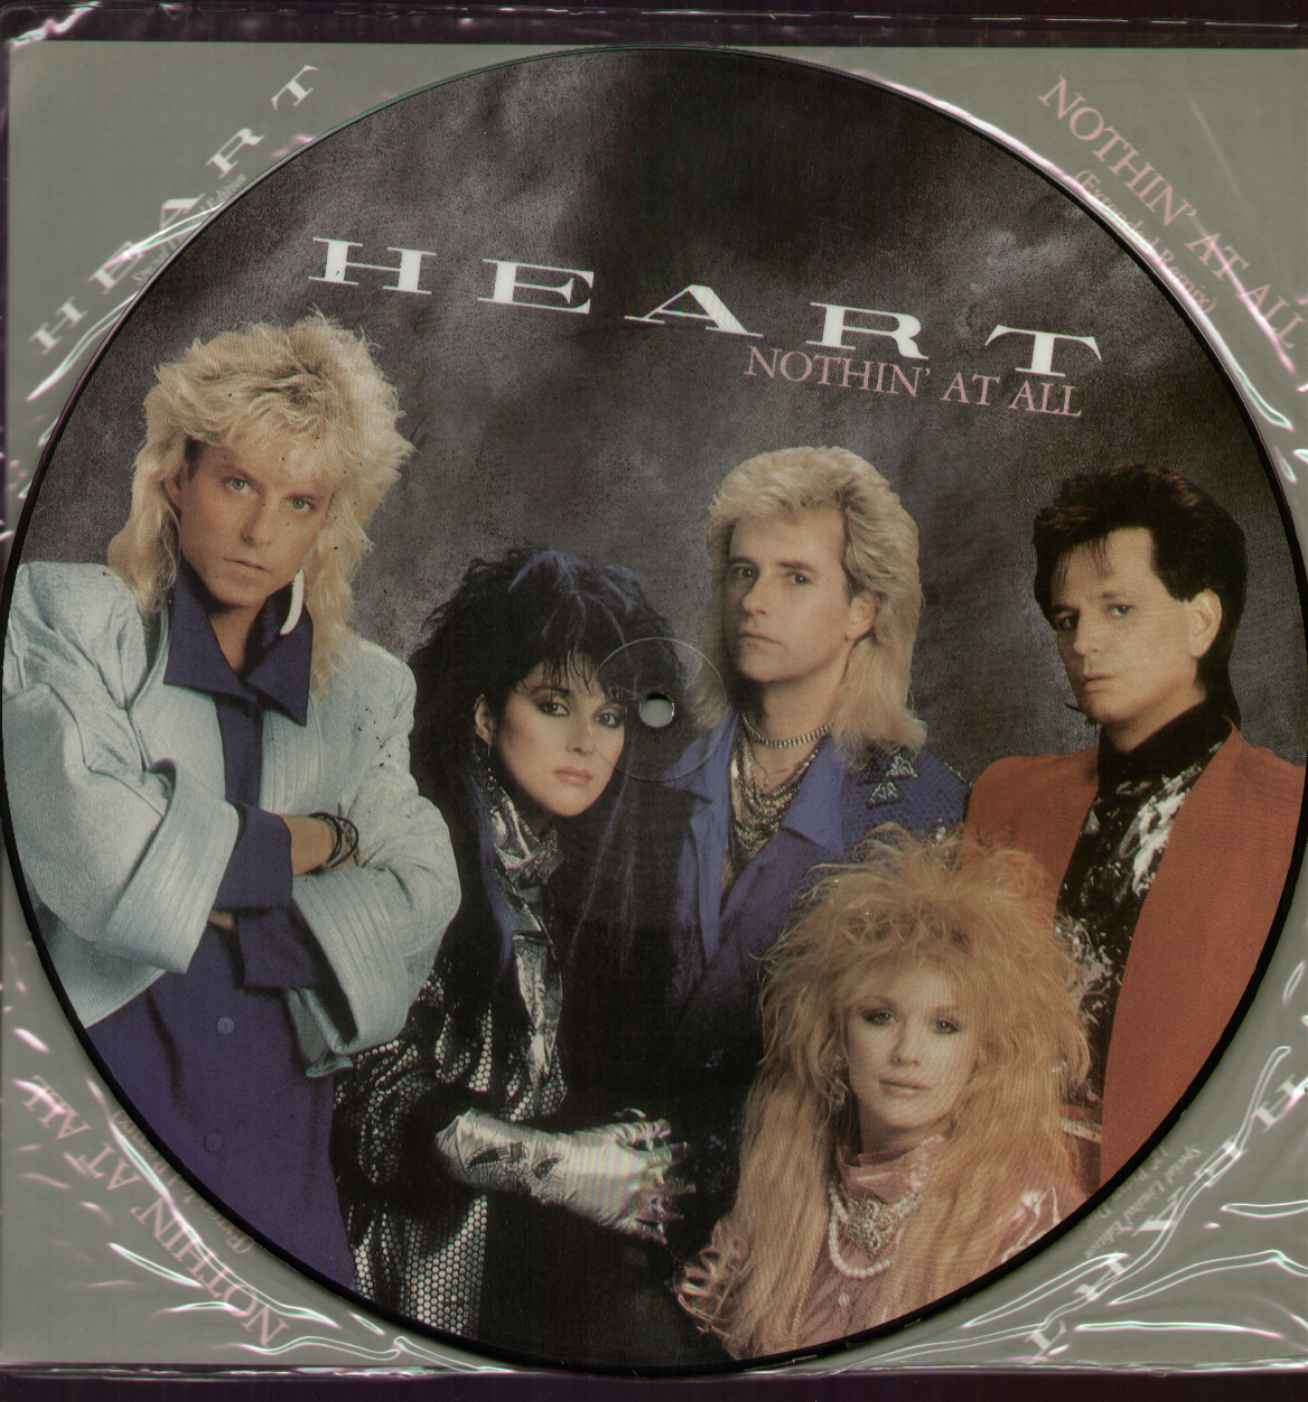 Heart - Nothin' At All LP